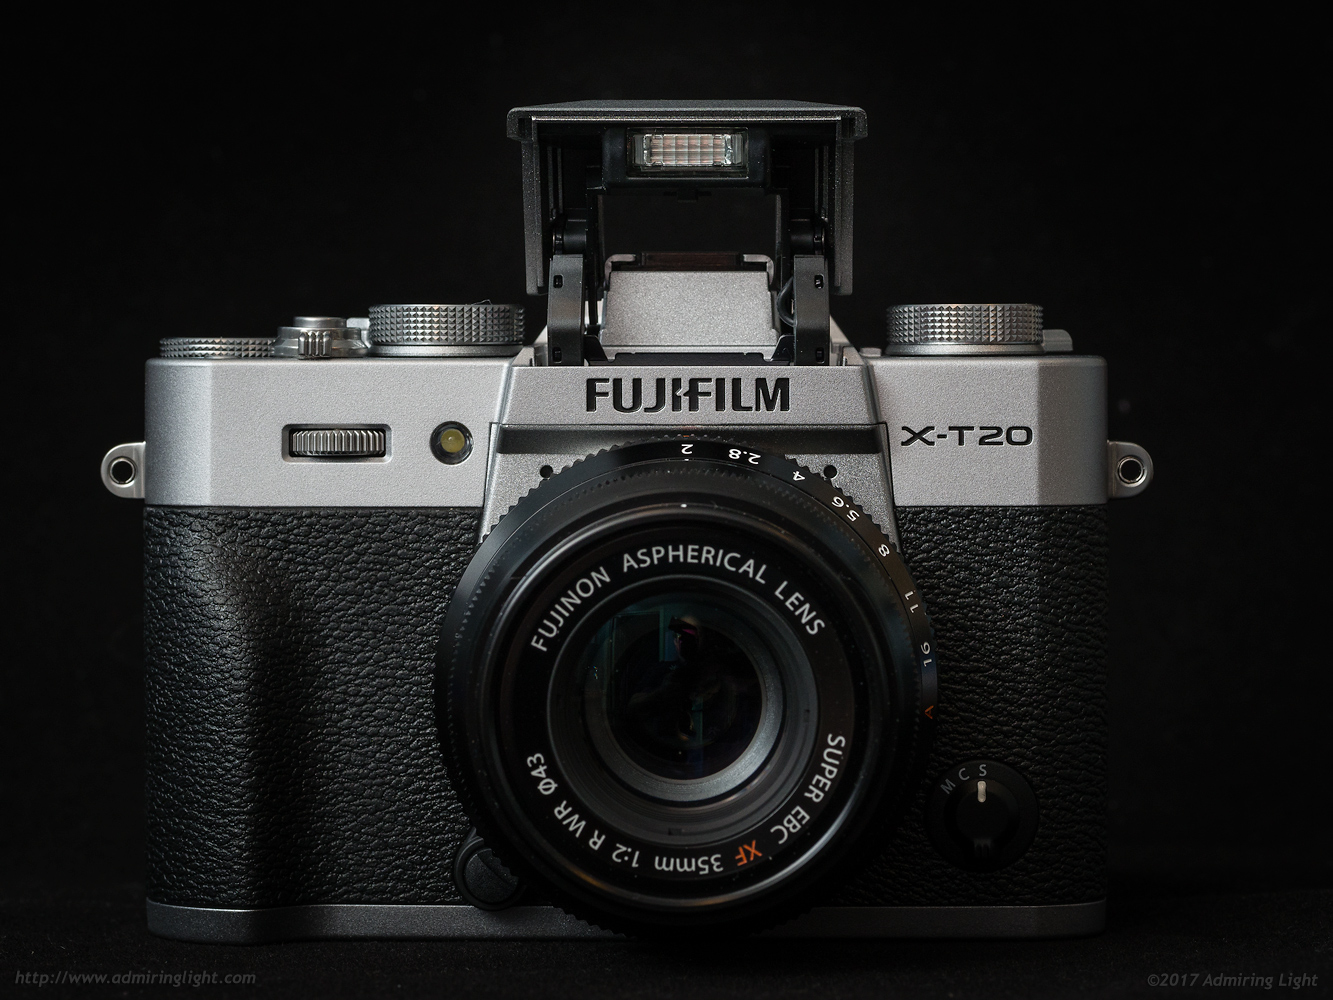 The pop-up flash of the Fuji X-T20